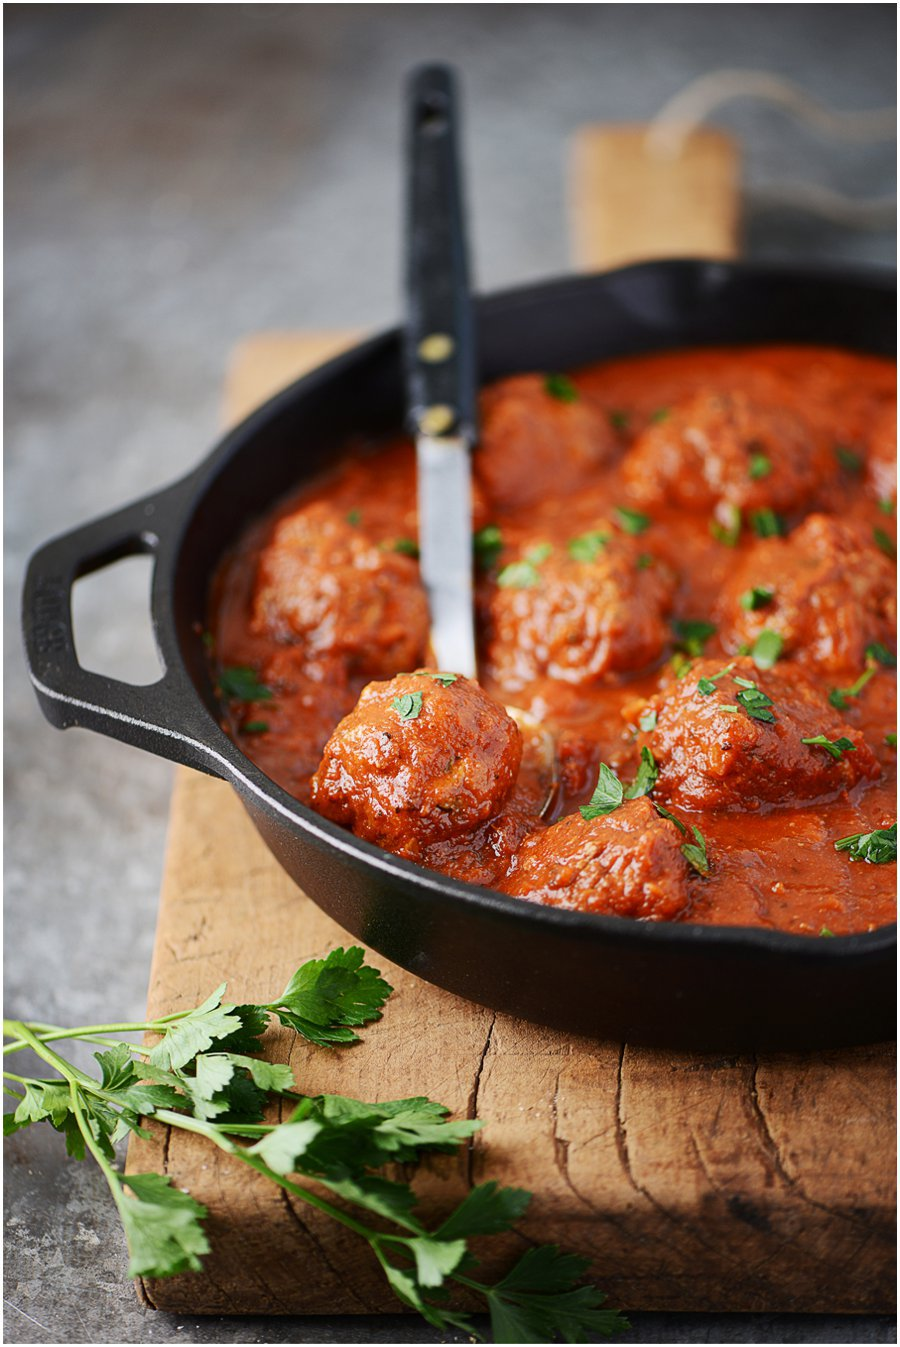 Melt in your mouth Italian Meatballs without the guilt! I'm a fan of using 96% ground beef to keep my recipes healthy, pack with protein and low fat!